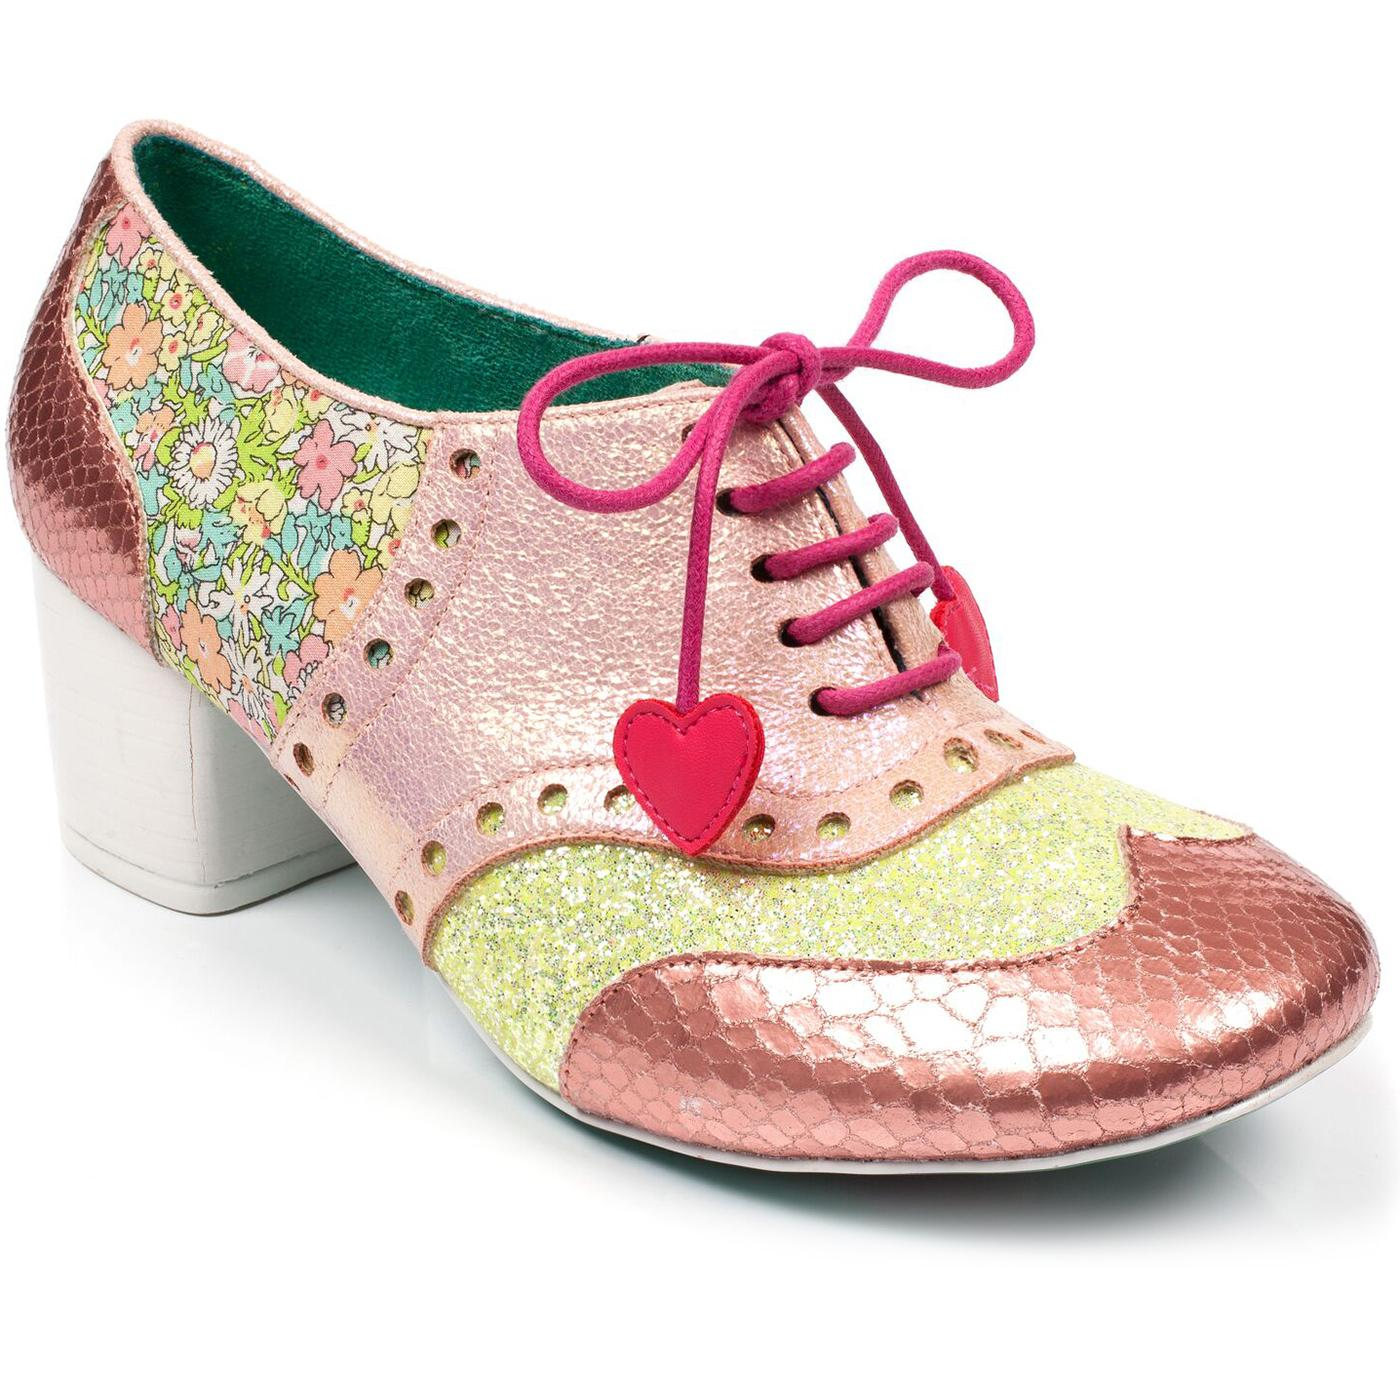 Clara Bow POETIC LICENCE Mod Brogue Heels in Pink